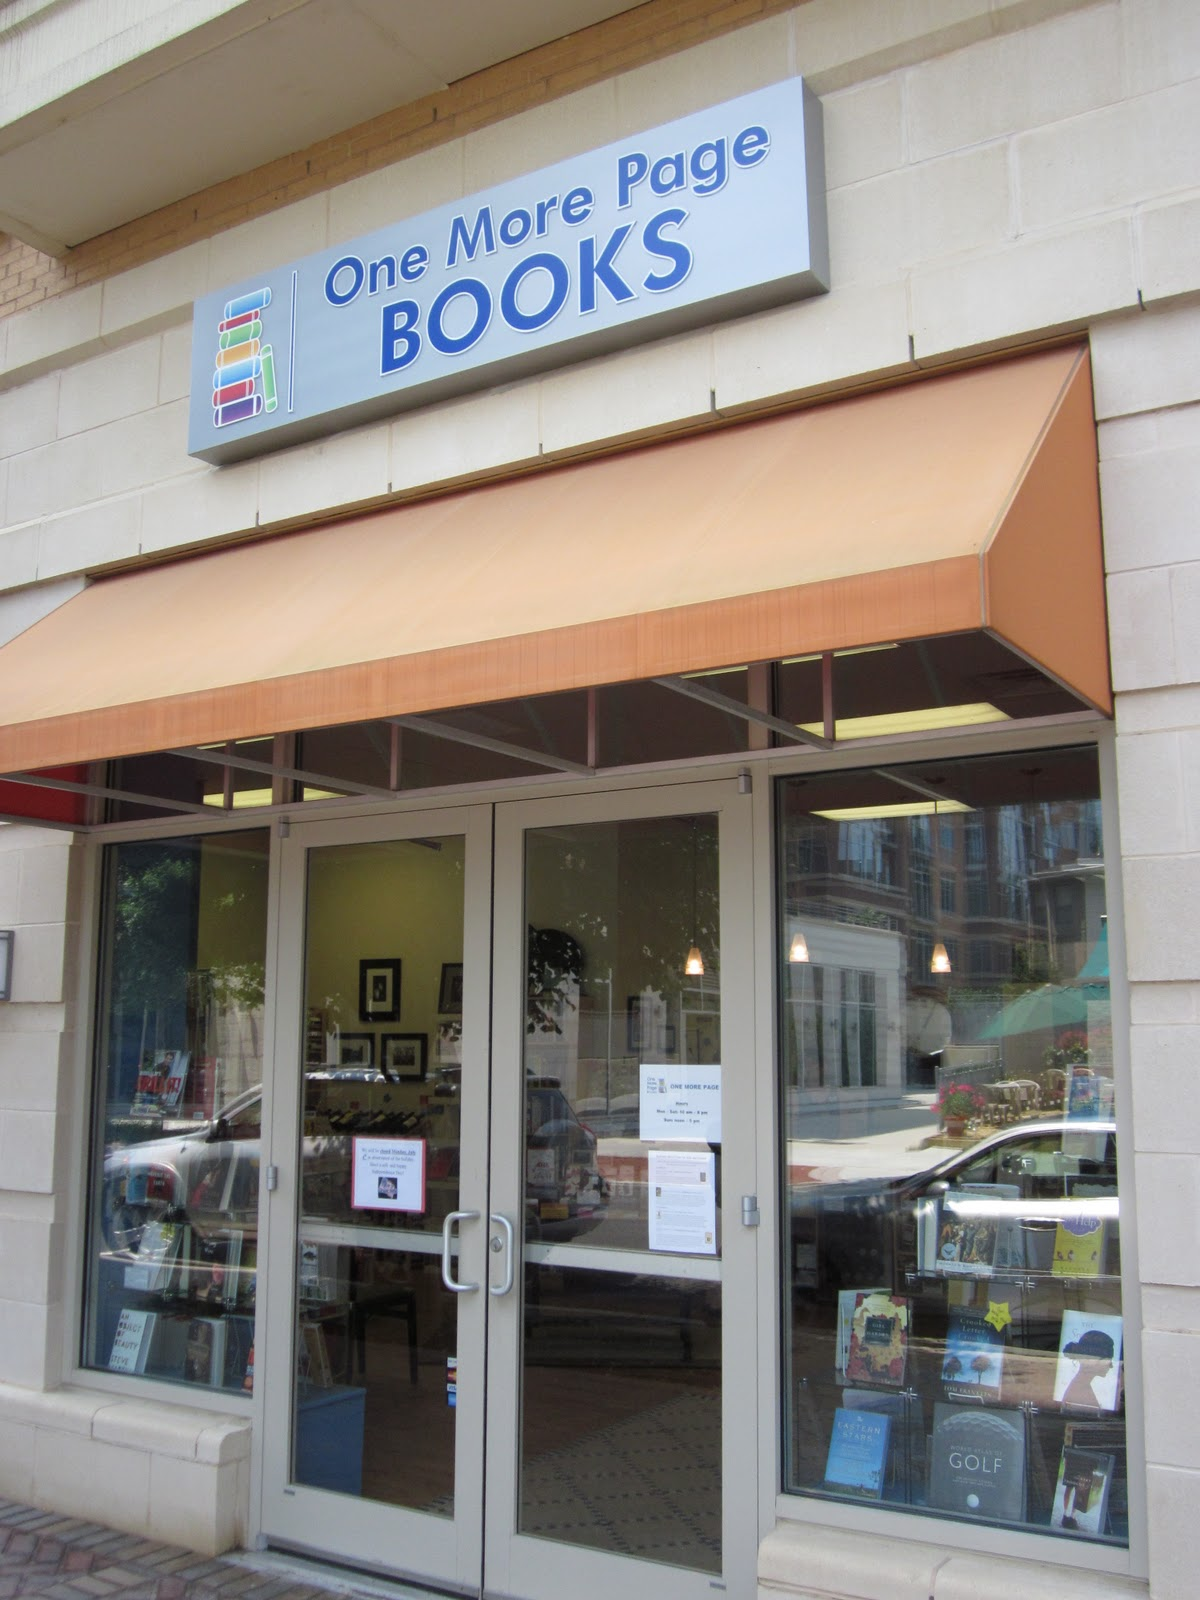 THE COMMITTEE ROOM: One More Page Books, A Newly Opened Bookstore